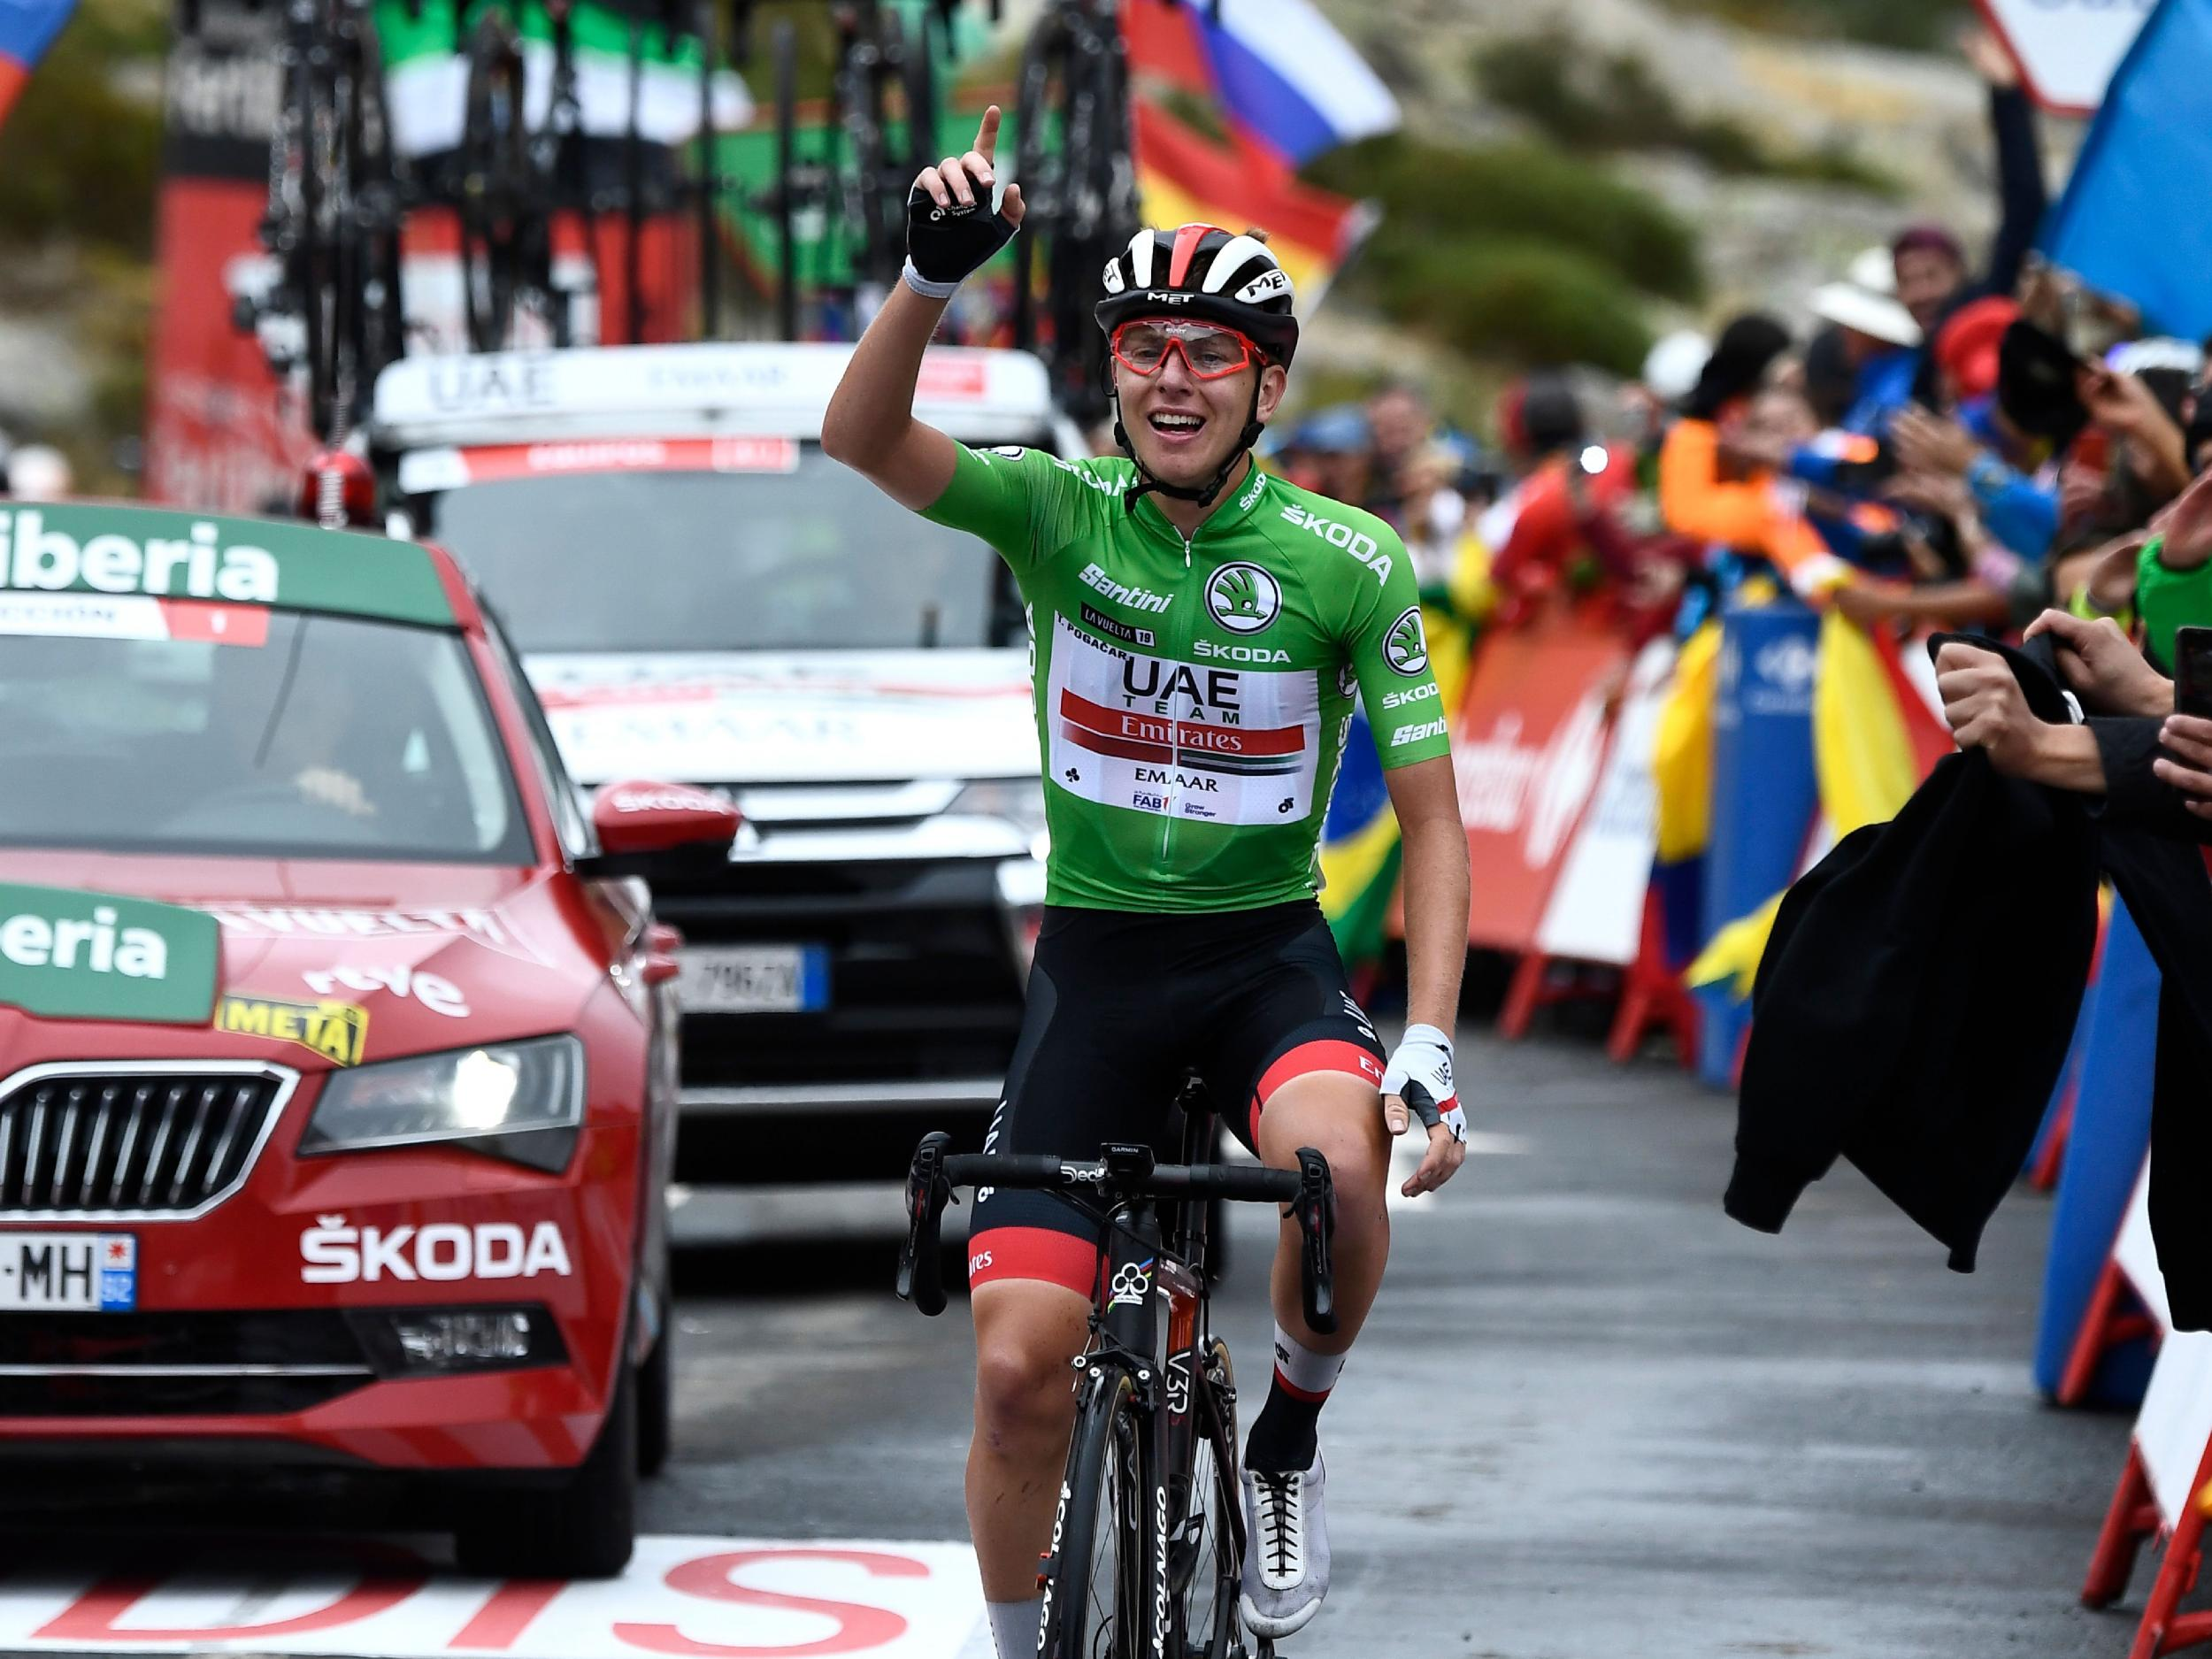 Vuelta a Espana 2019: Primoz Roglic nears overall victory as Tadej Pogacar claims another superb stage win